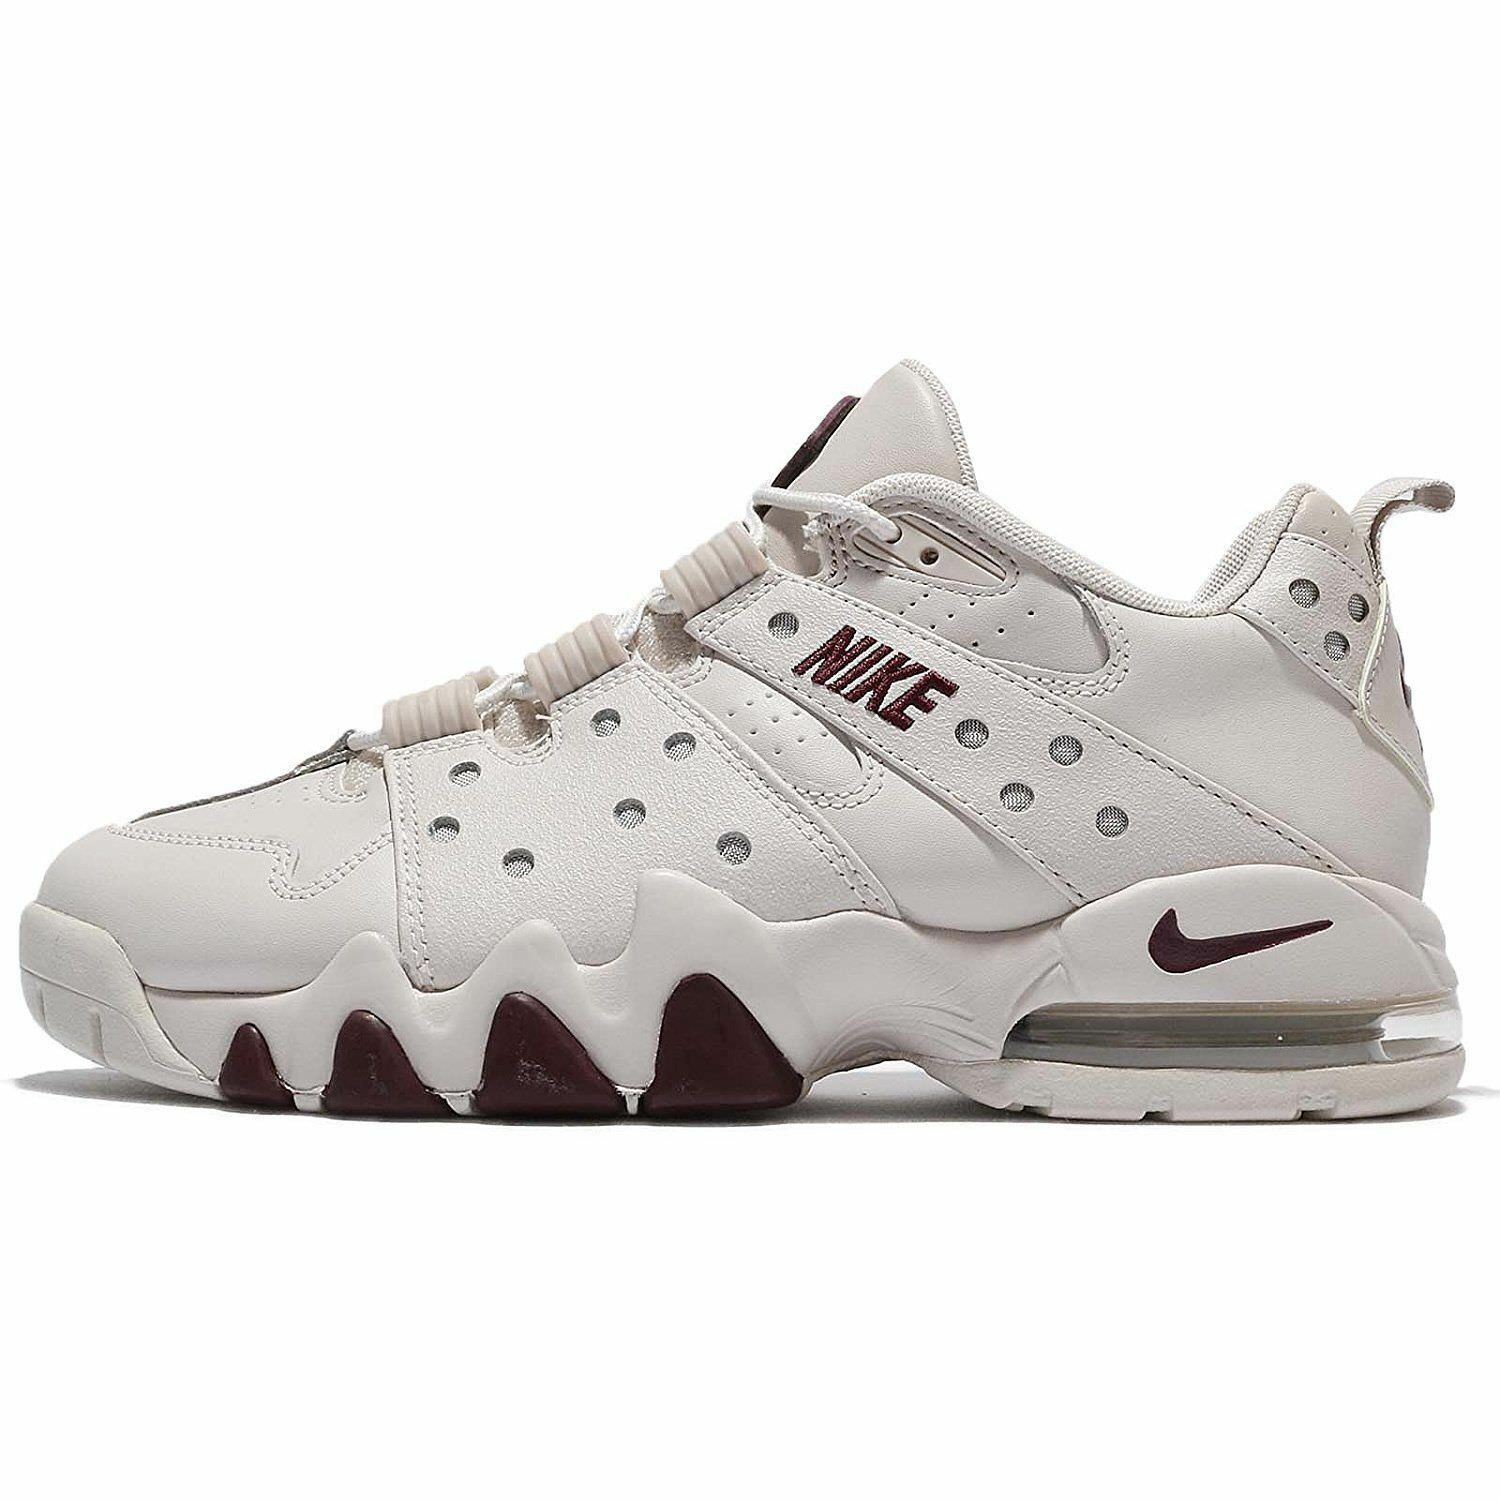 Nike Air Max CB '94 Low Charles Barkley Men Shoes Light Bone/Bordeaux 917752 004